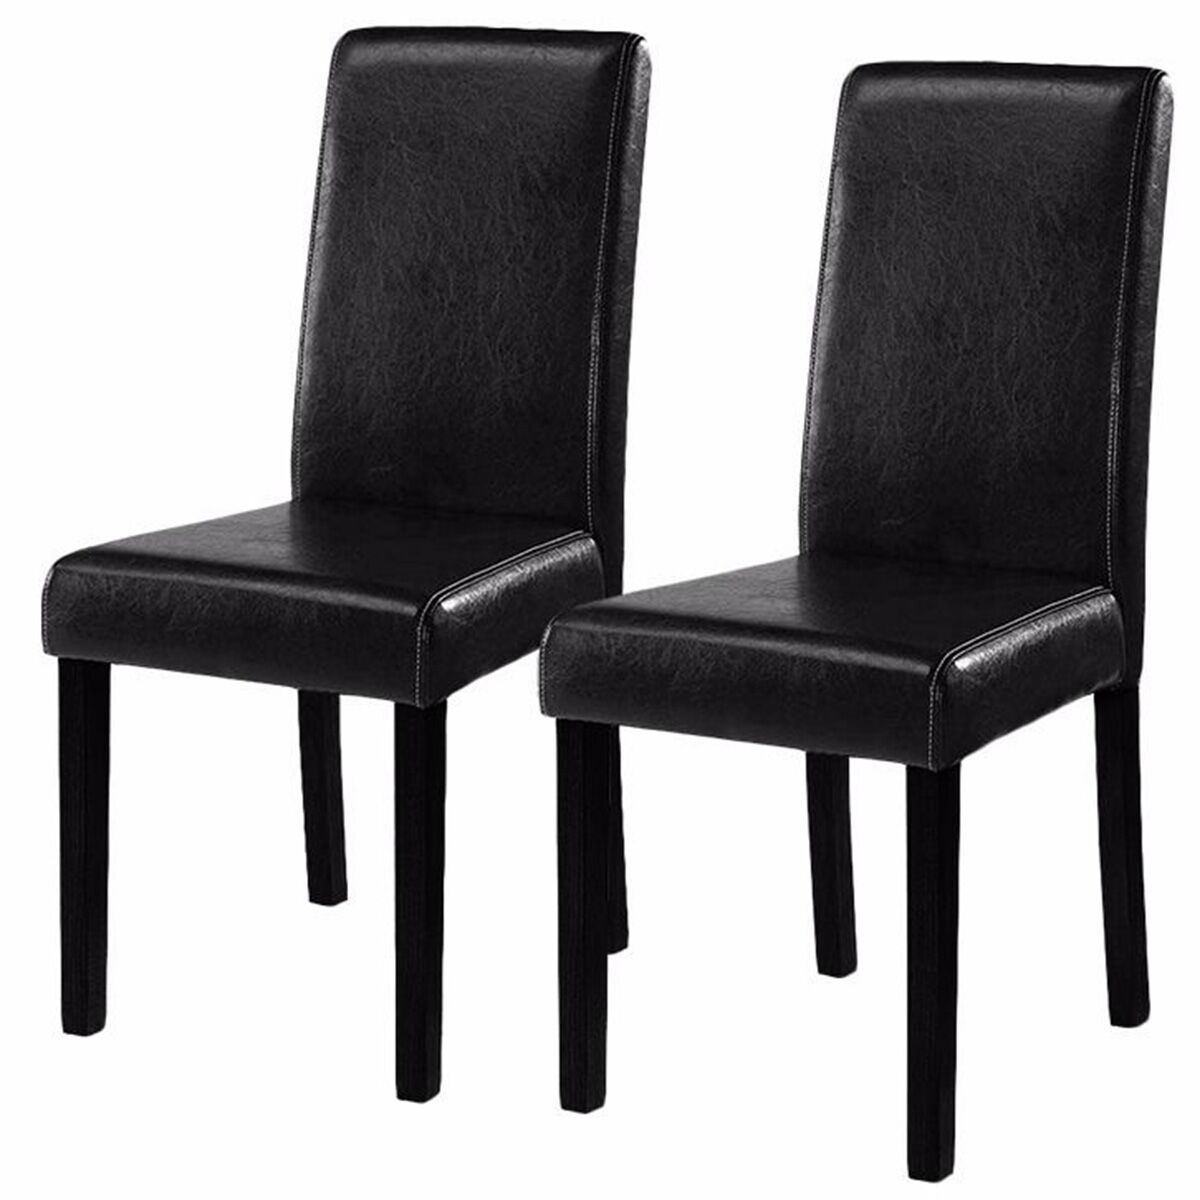 Costway Set of 2 Black Elegant Design Leather Contemporary Dining Chairs Home Room